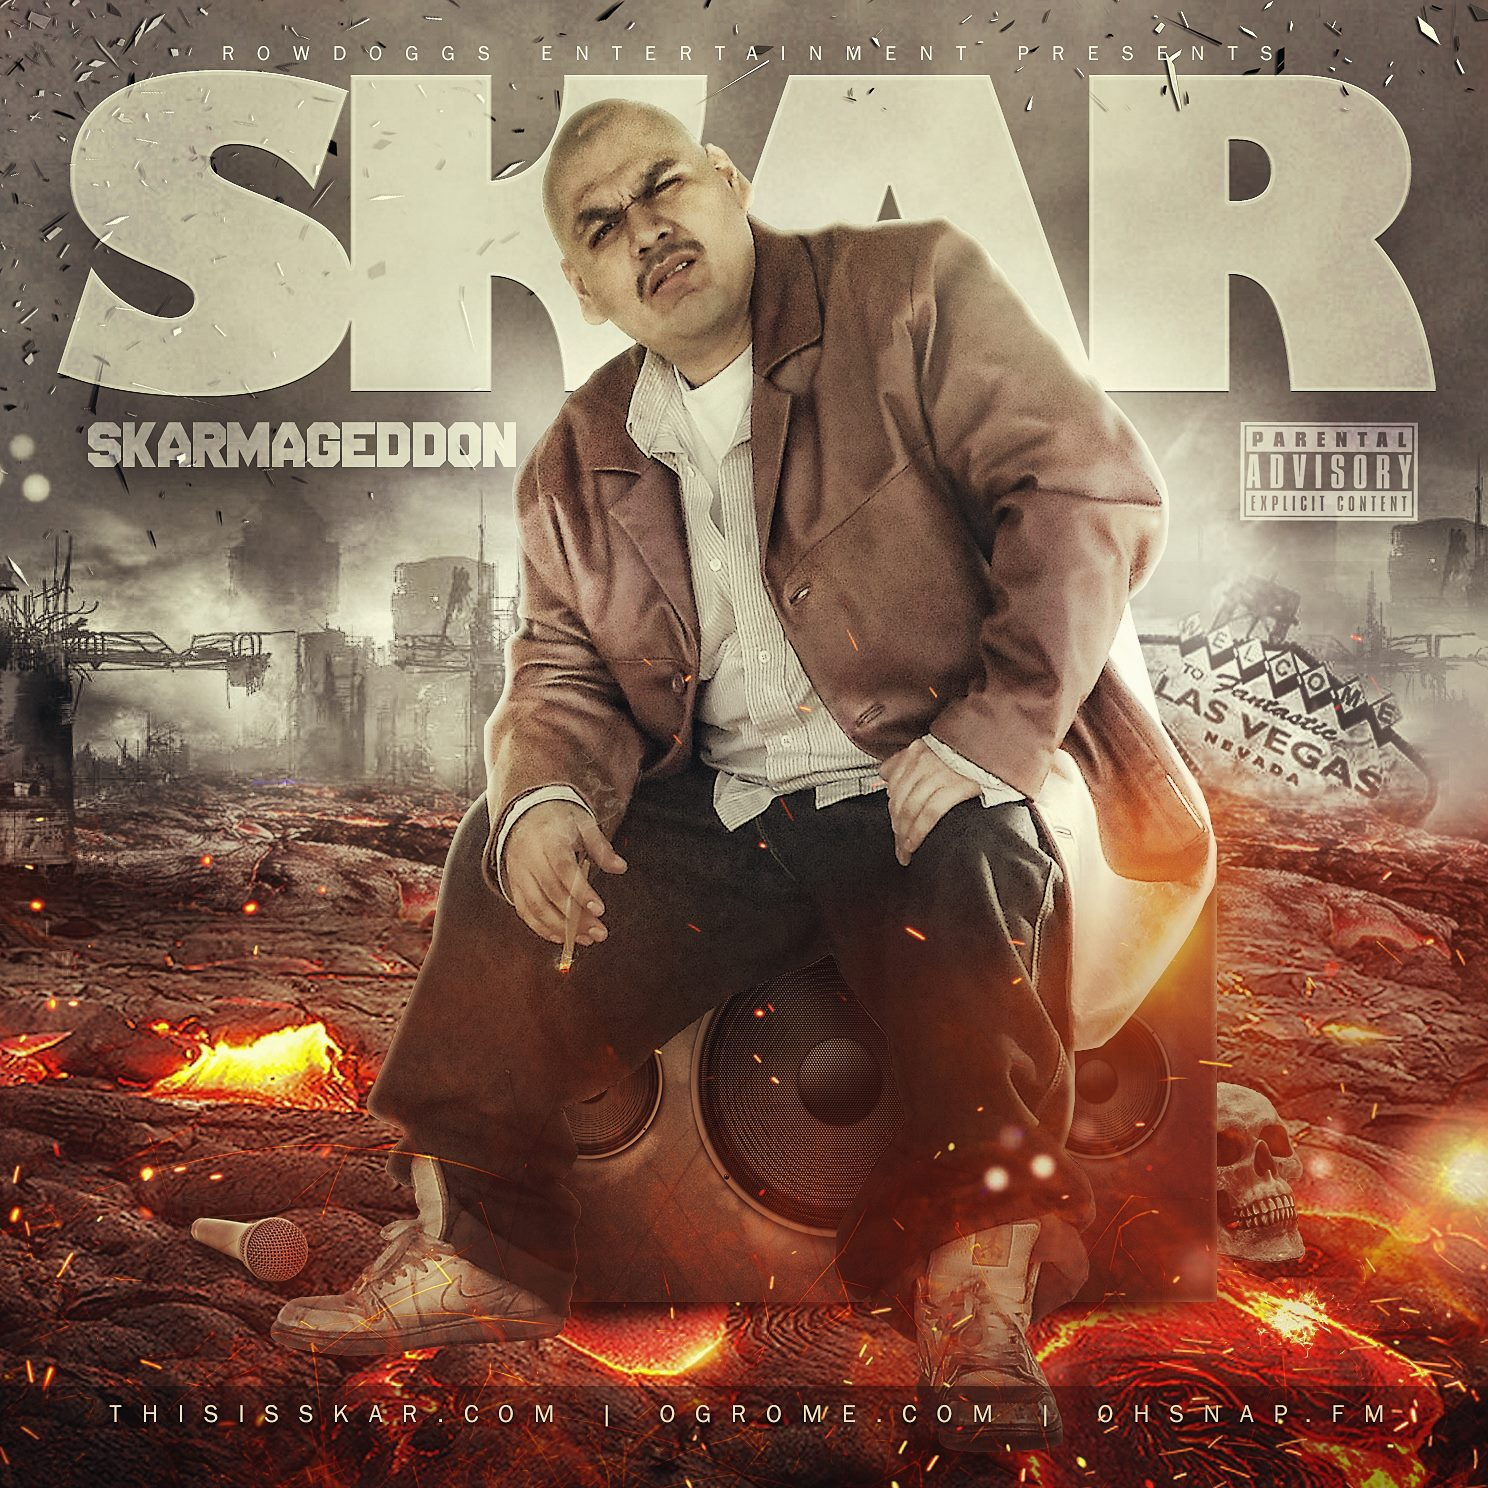 News Update - Skar finally releases the long awaited album Skarmageddon, which is his follow up album to Your Connect, just weeks before the pending releases of Skar Warz